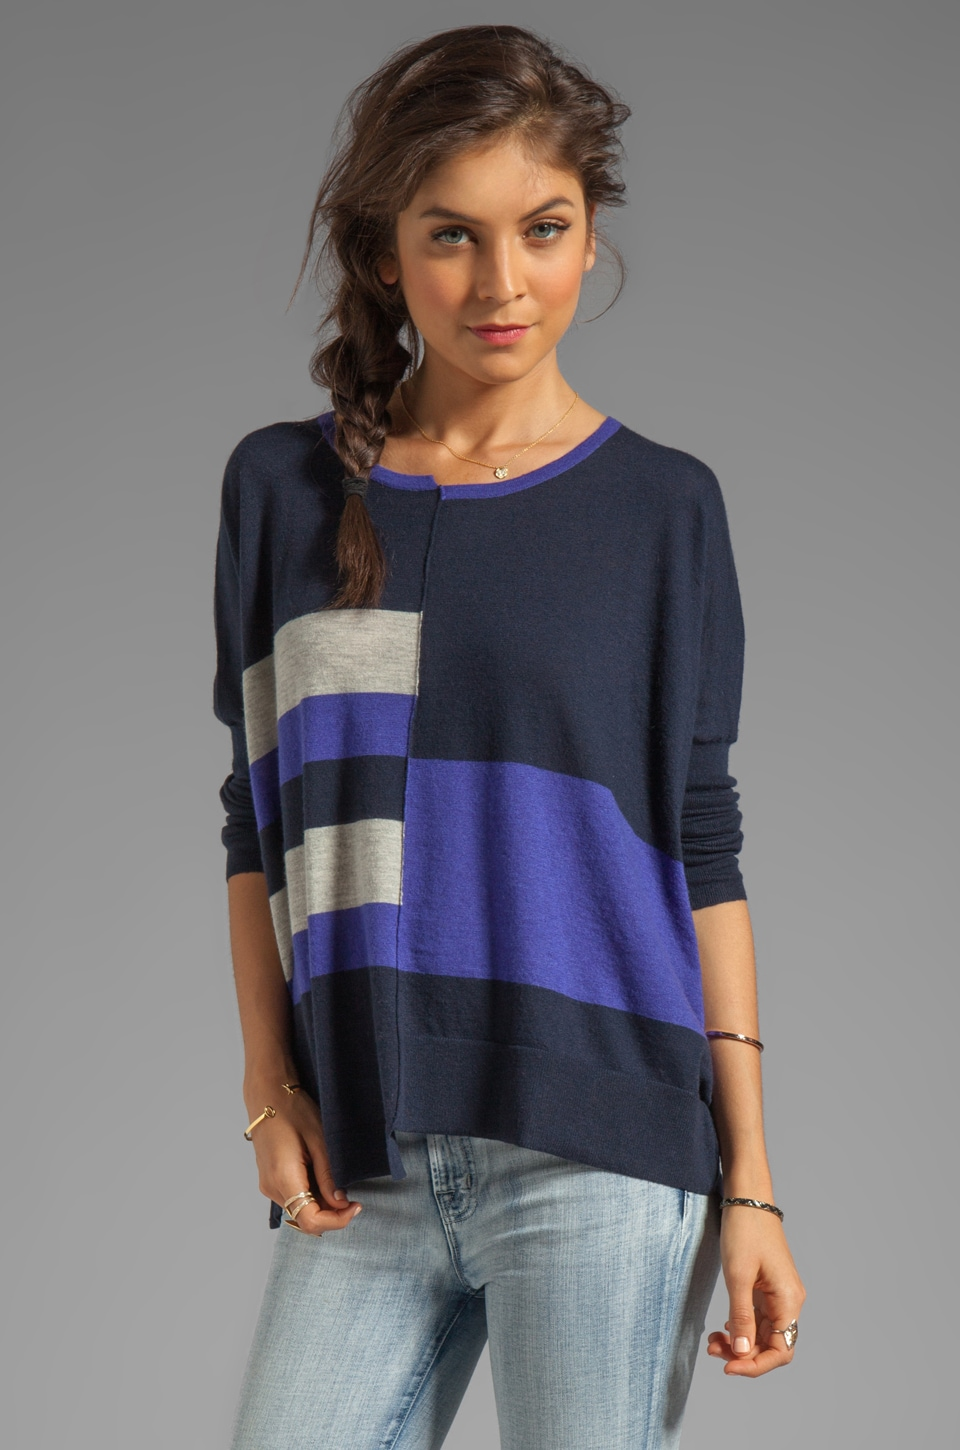 Autumn Cashmere Tissue Cashmere Stripe Block Crew in Peacoat/Sodalite/Birch